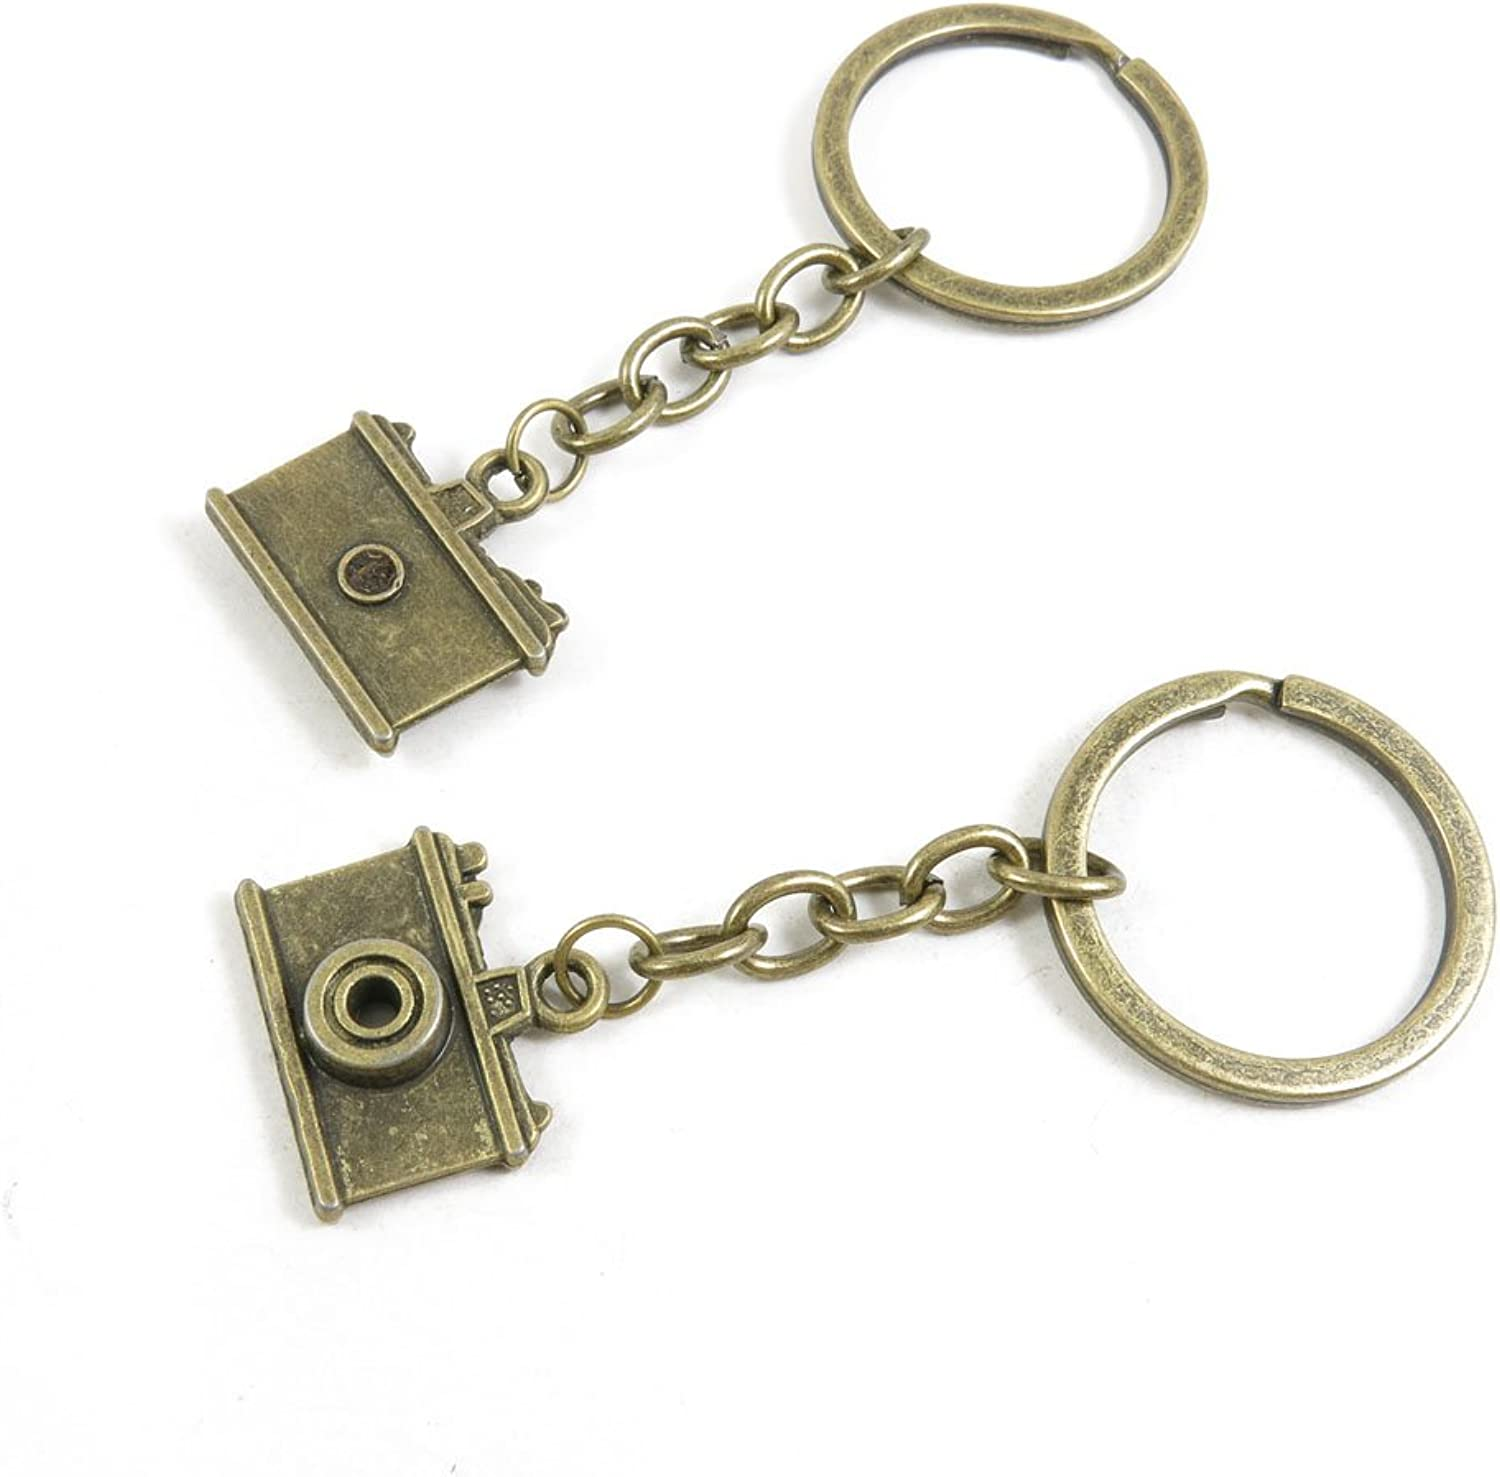 170 Pieces Fashion Jewelry Keyring Keychain Door Car Key Tag Ring Chain Supplier Supply Wholesale Bulk Lots O8UM3 Camera